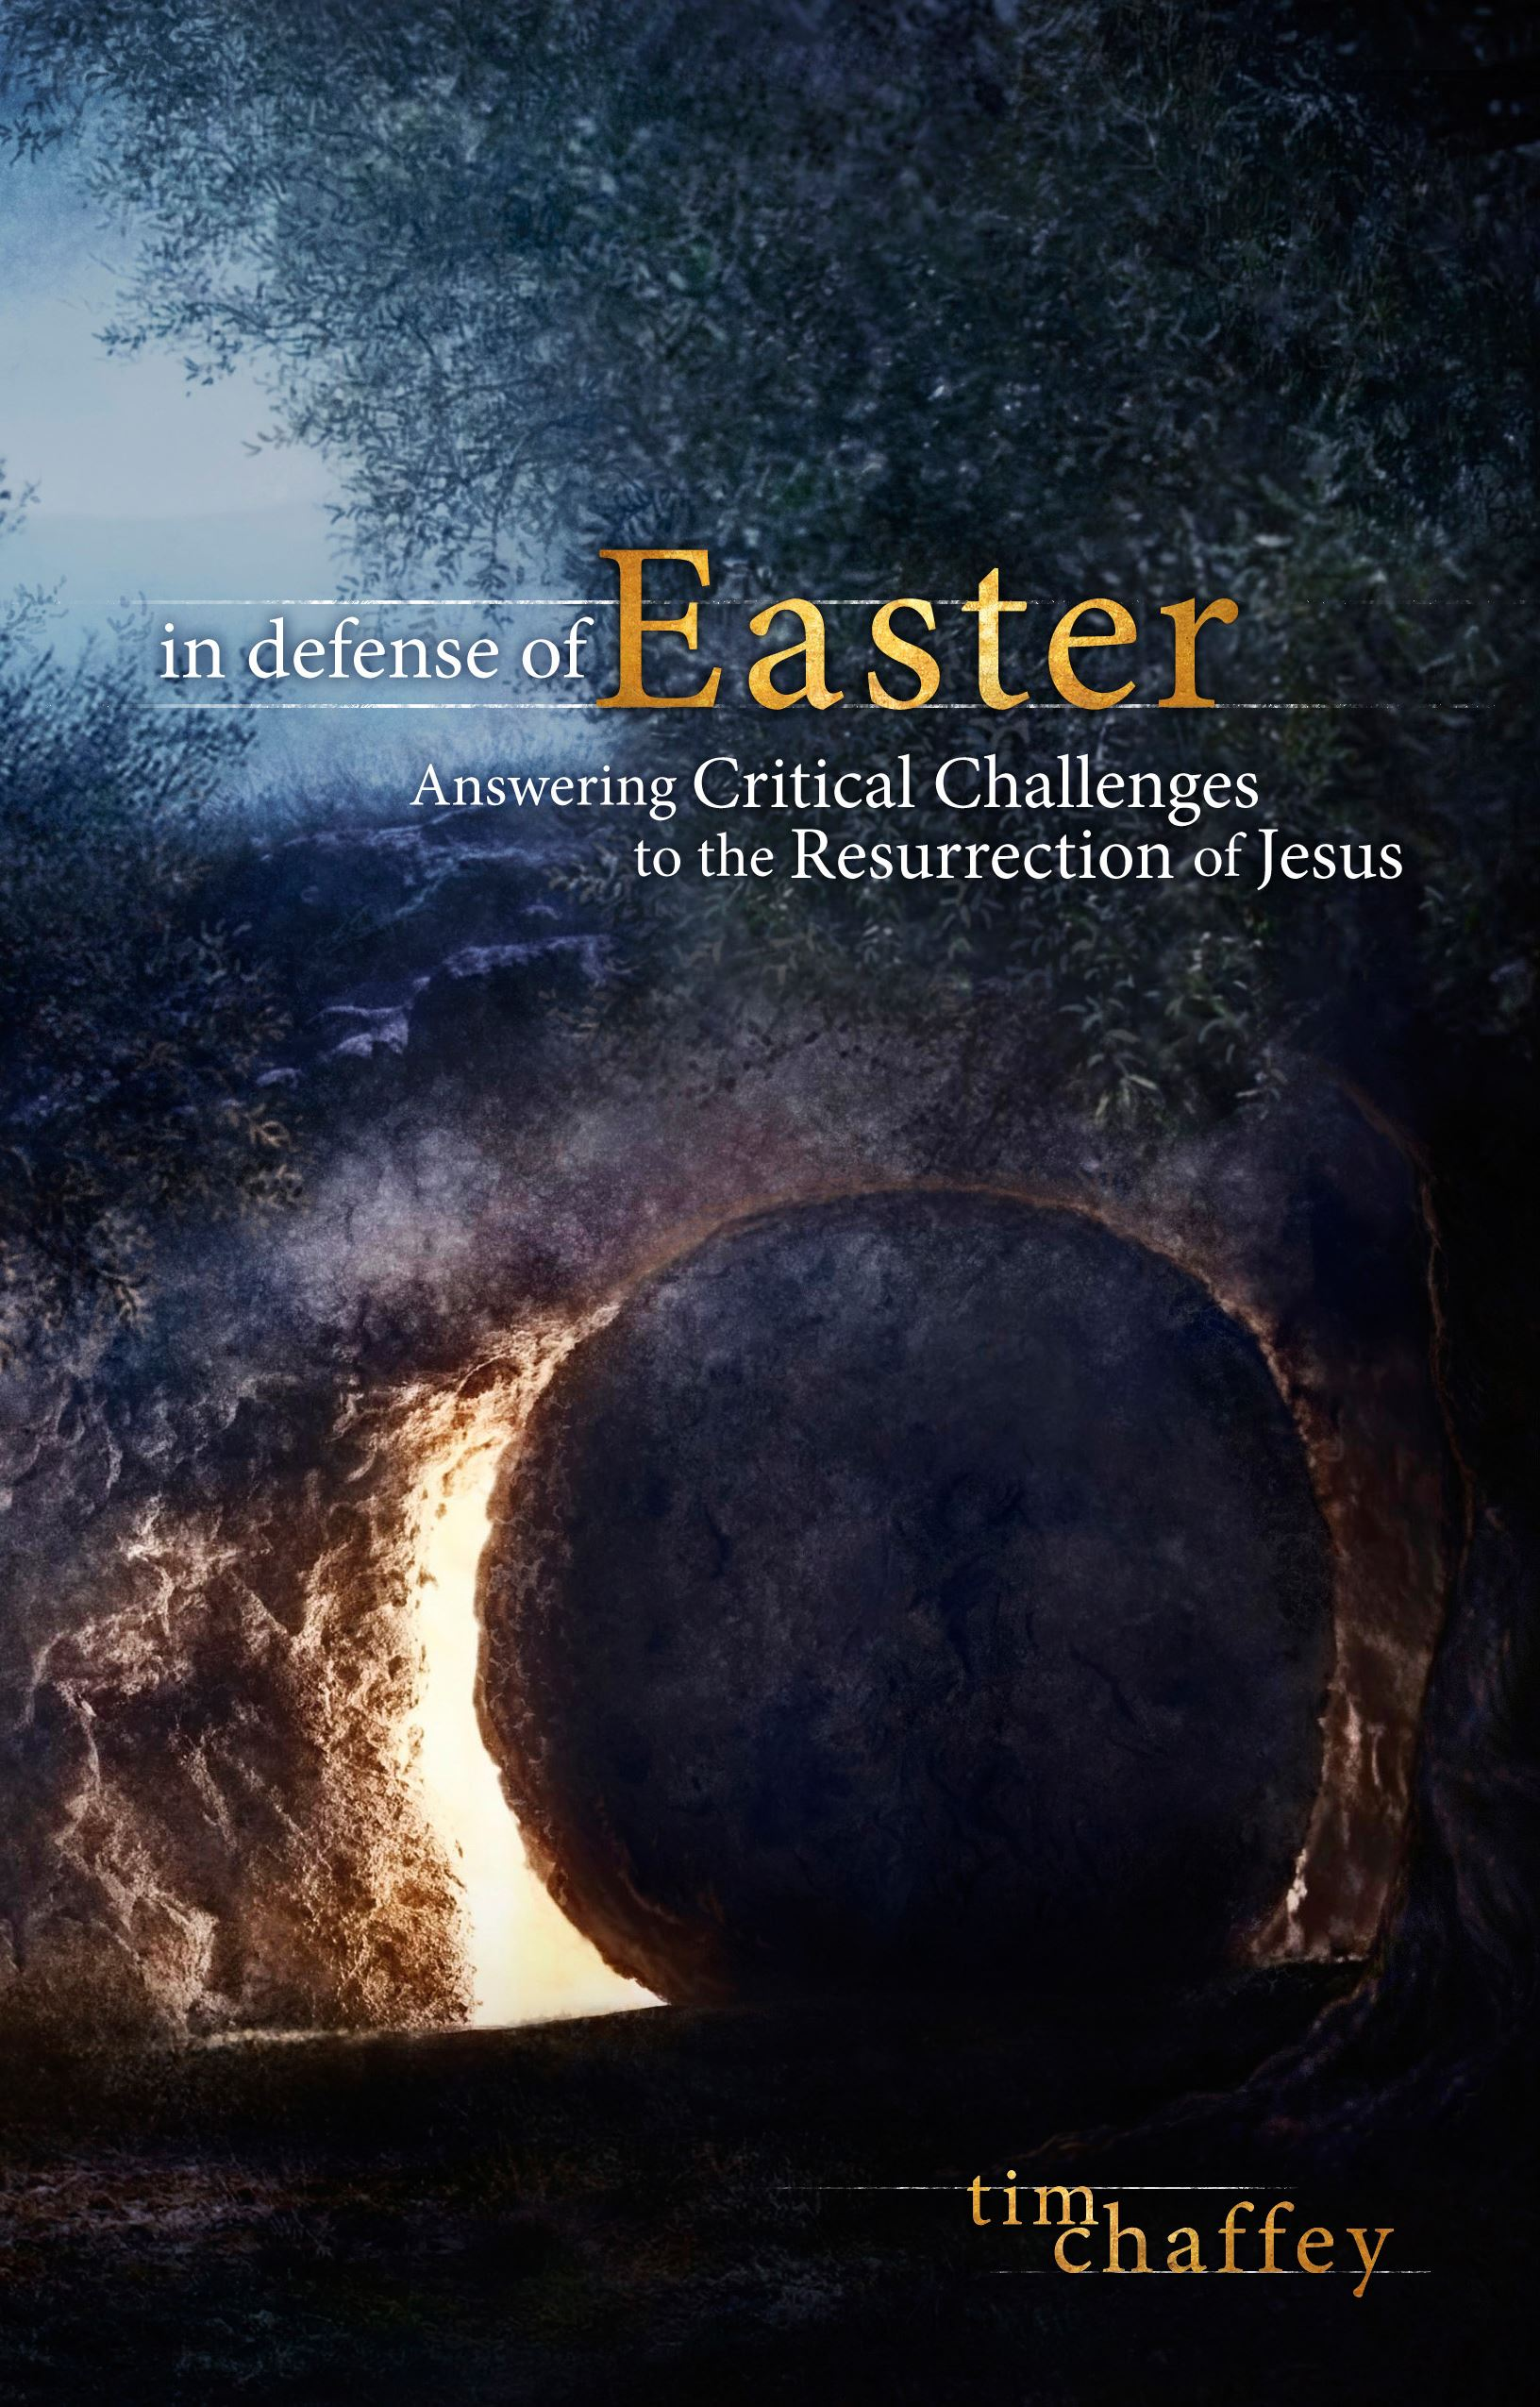 In Defense of Easter Front Cover Reduced